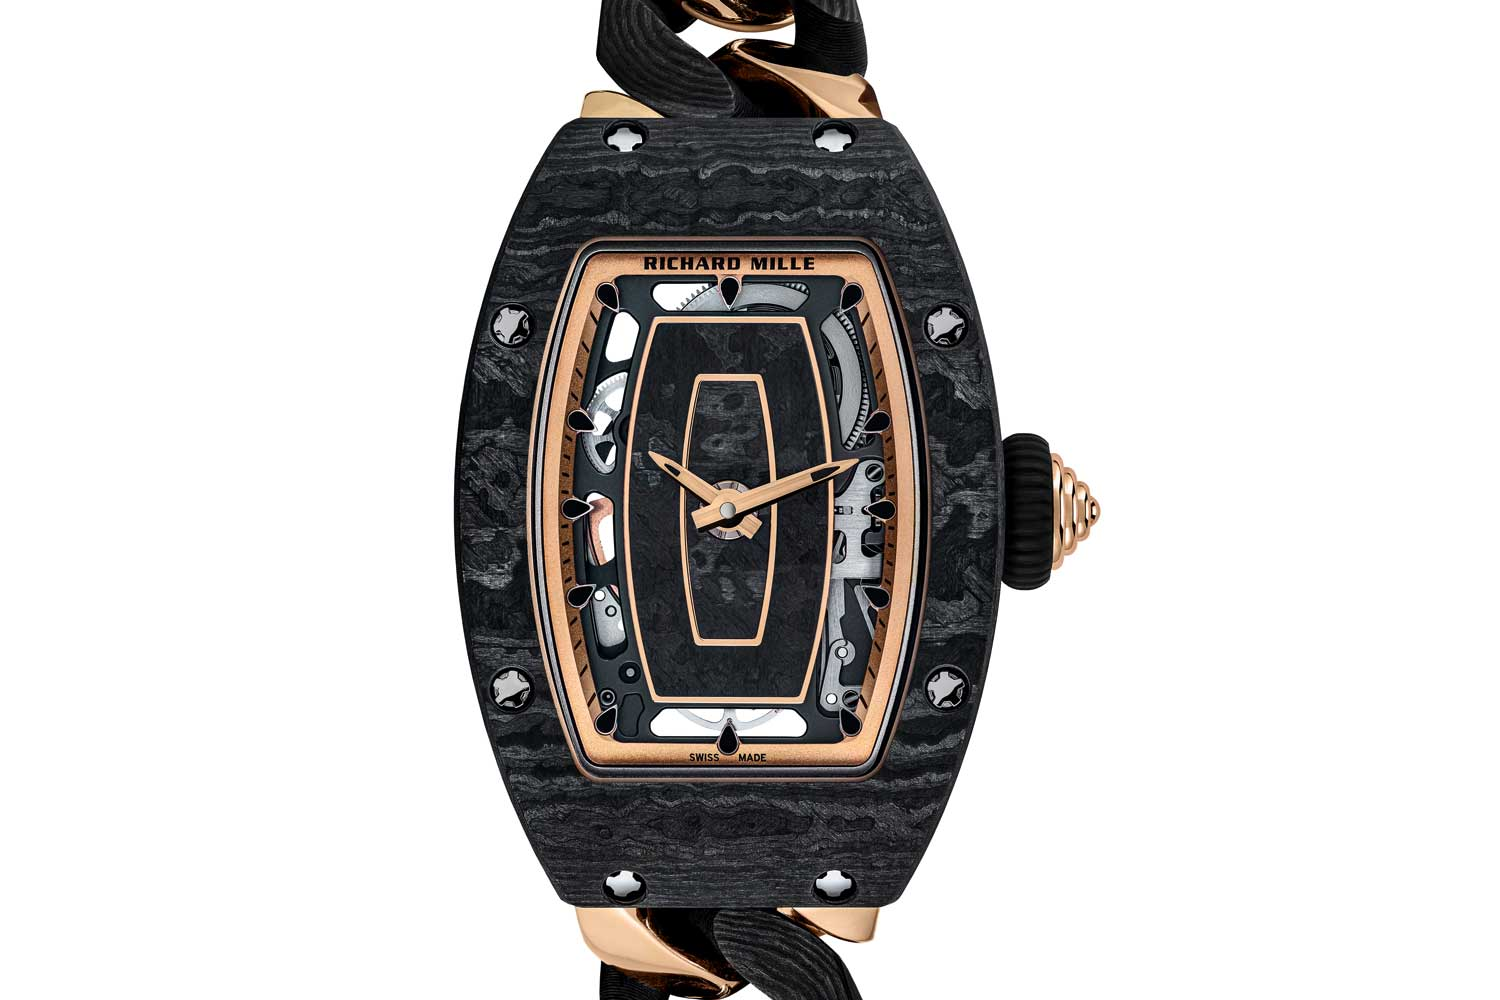 RM 07-01 open-link red gold and Carbon TPT bracelet